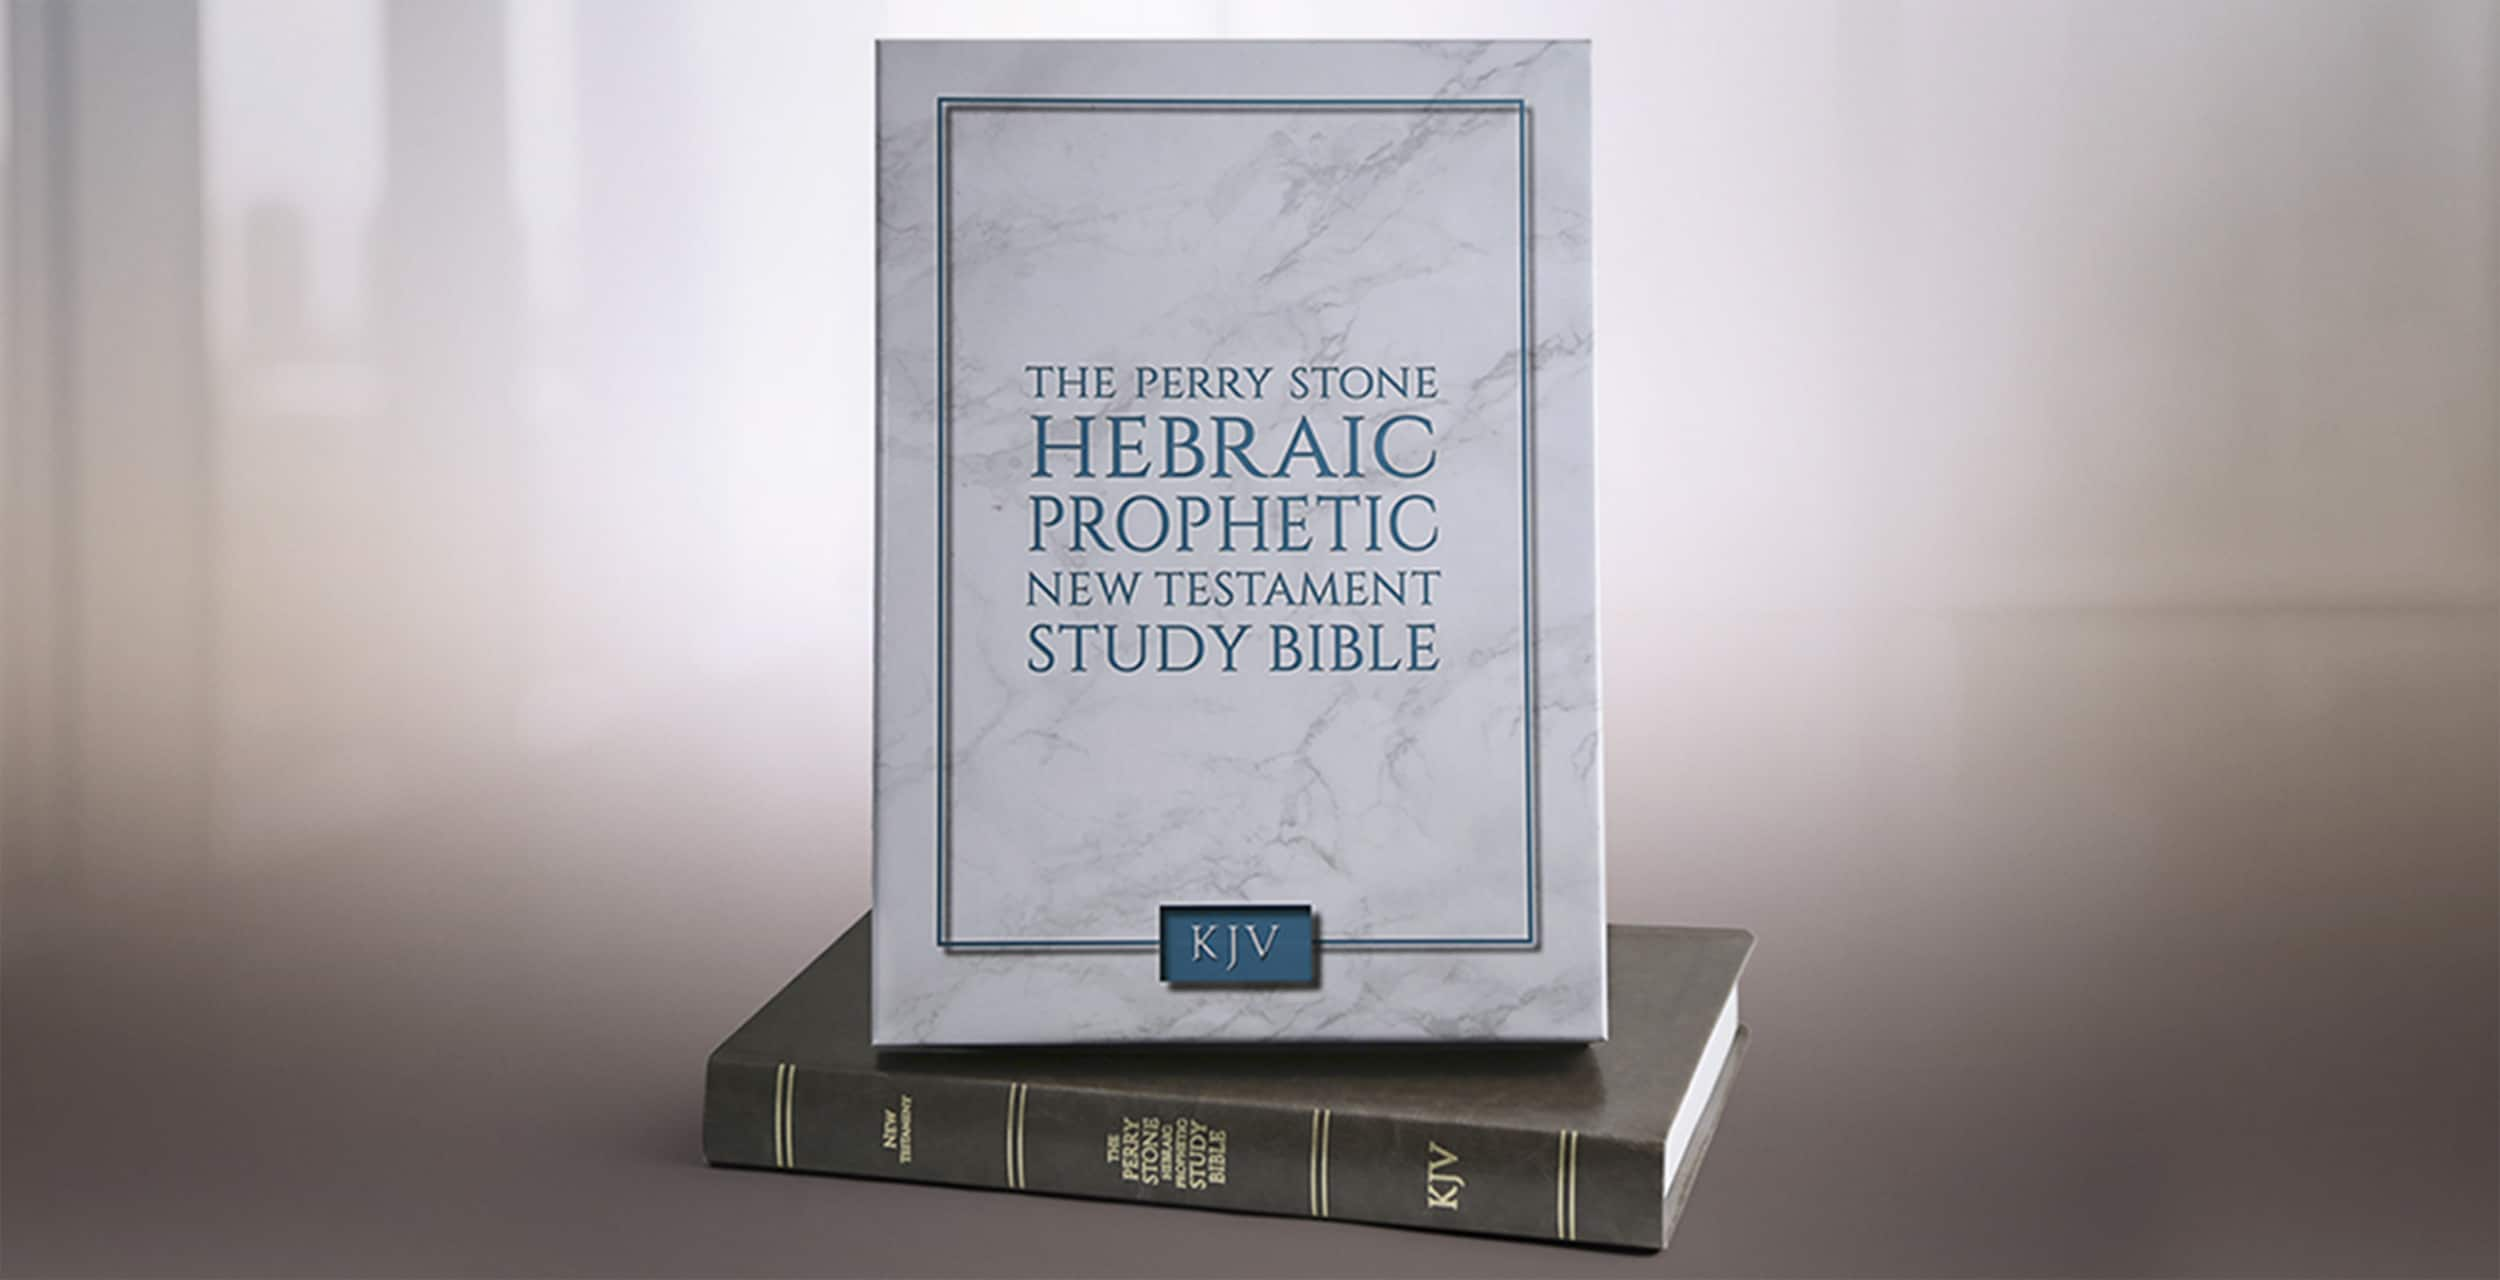 New Testament Study Bible